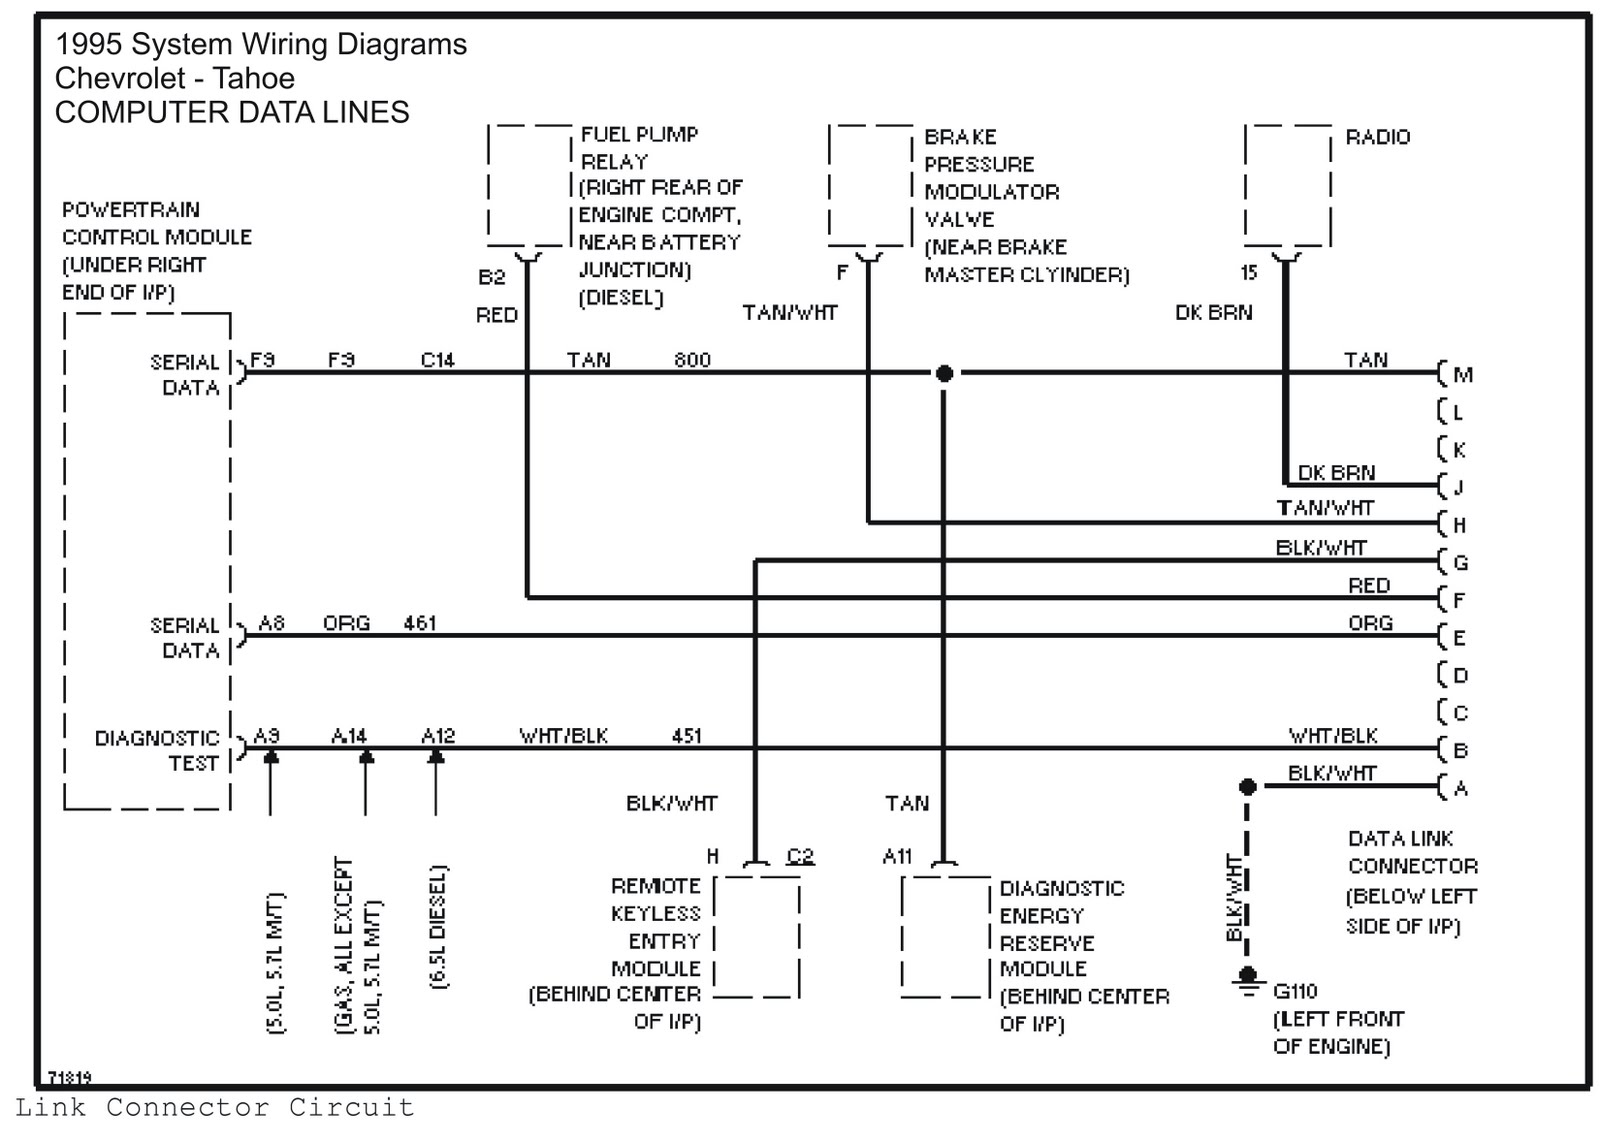 medium resolution of 96 tahoe 02 wiring diagram wiring diagram 96 tahoe engine diagram